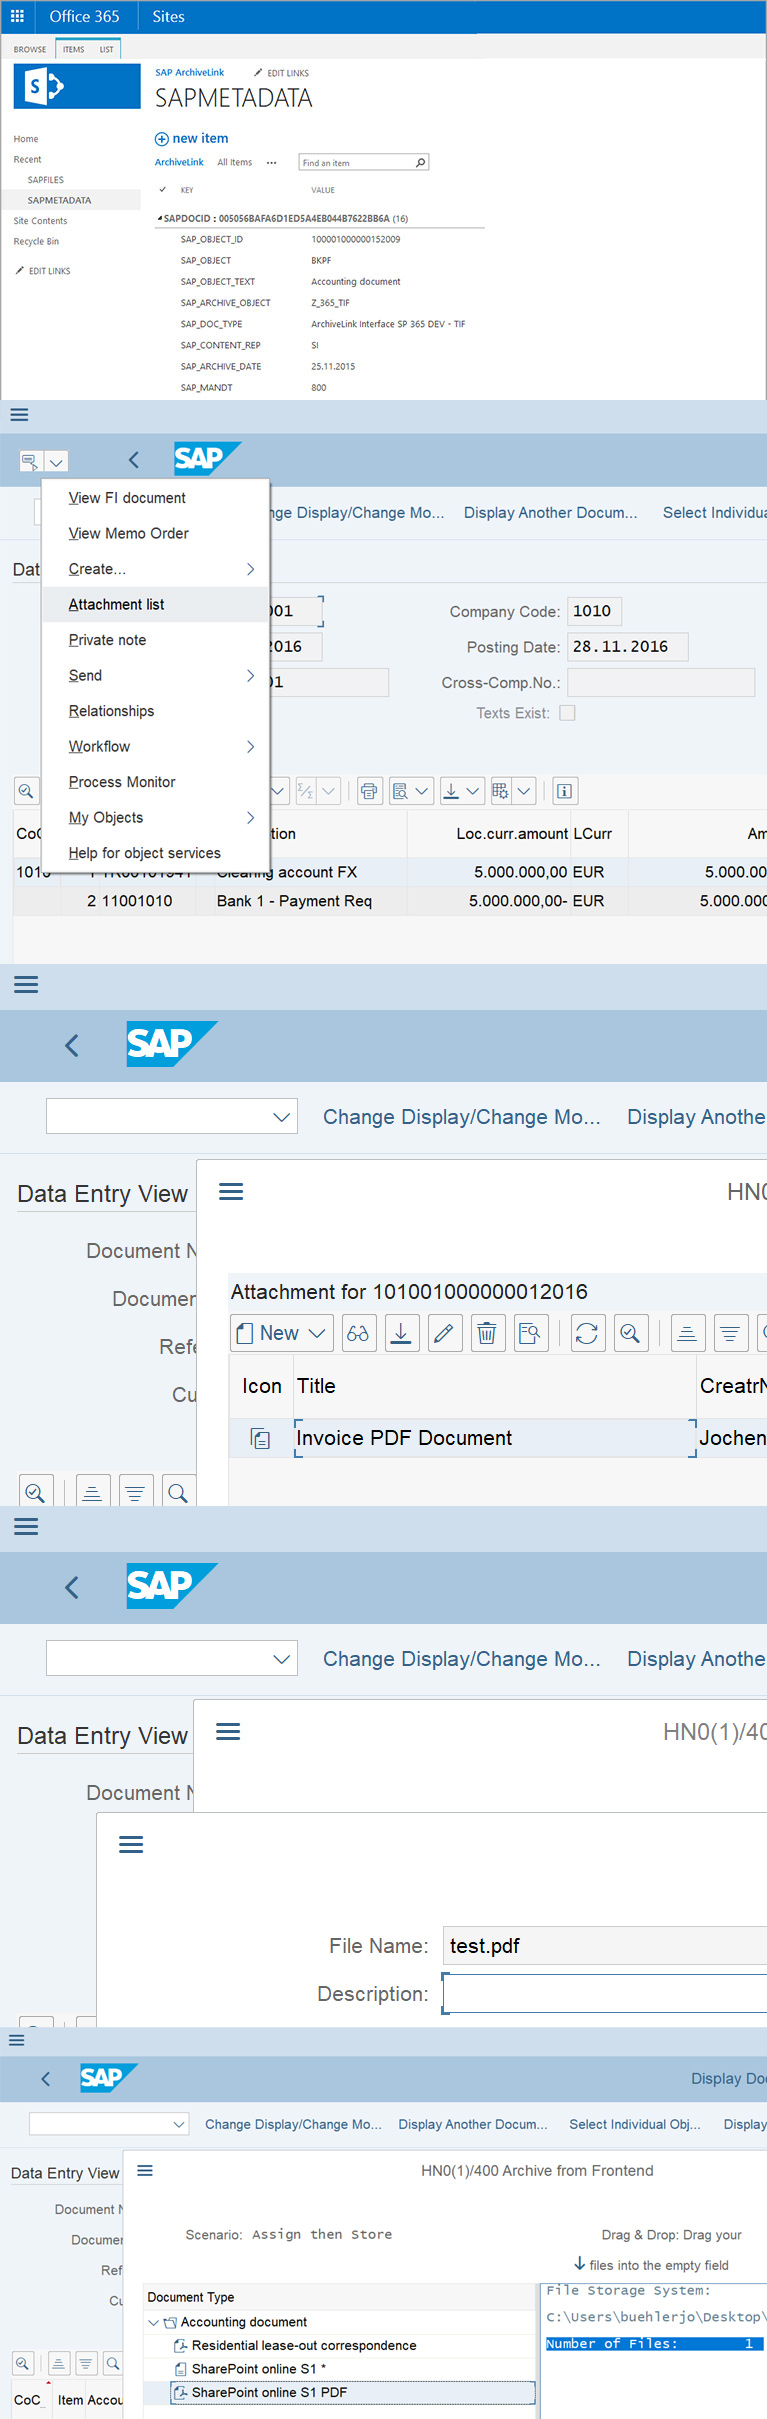 Sharepoint SAP DMS Archivelink Interface